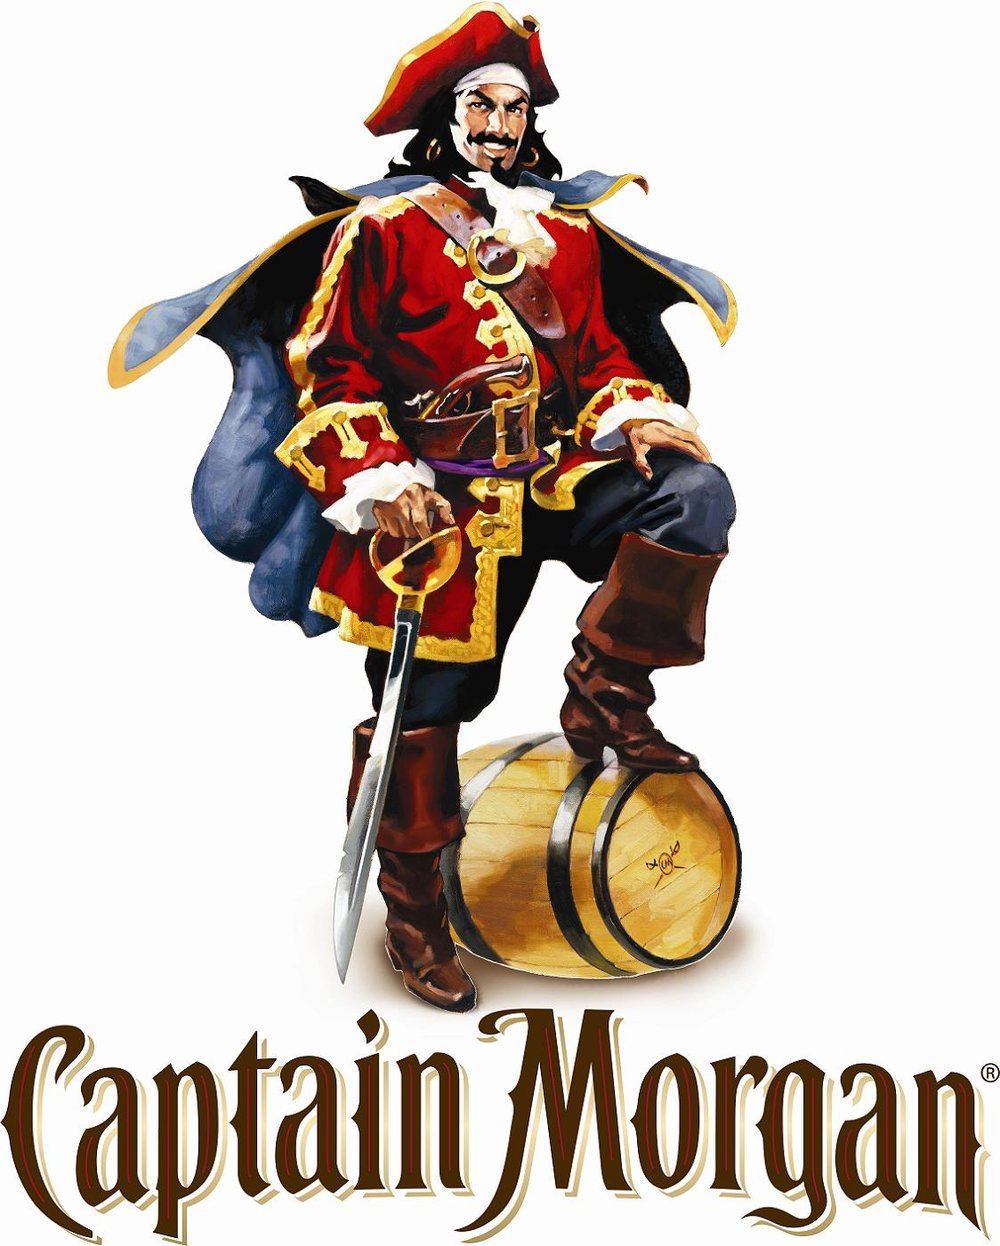 Captain Morgan.jpg